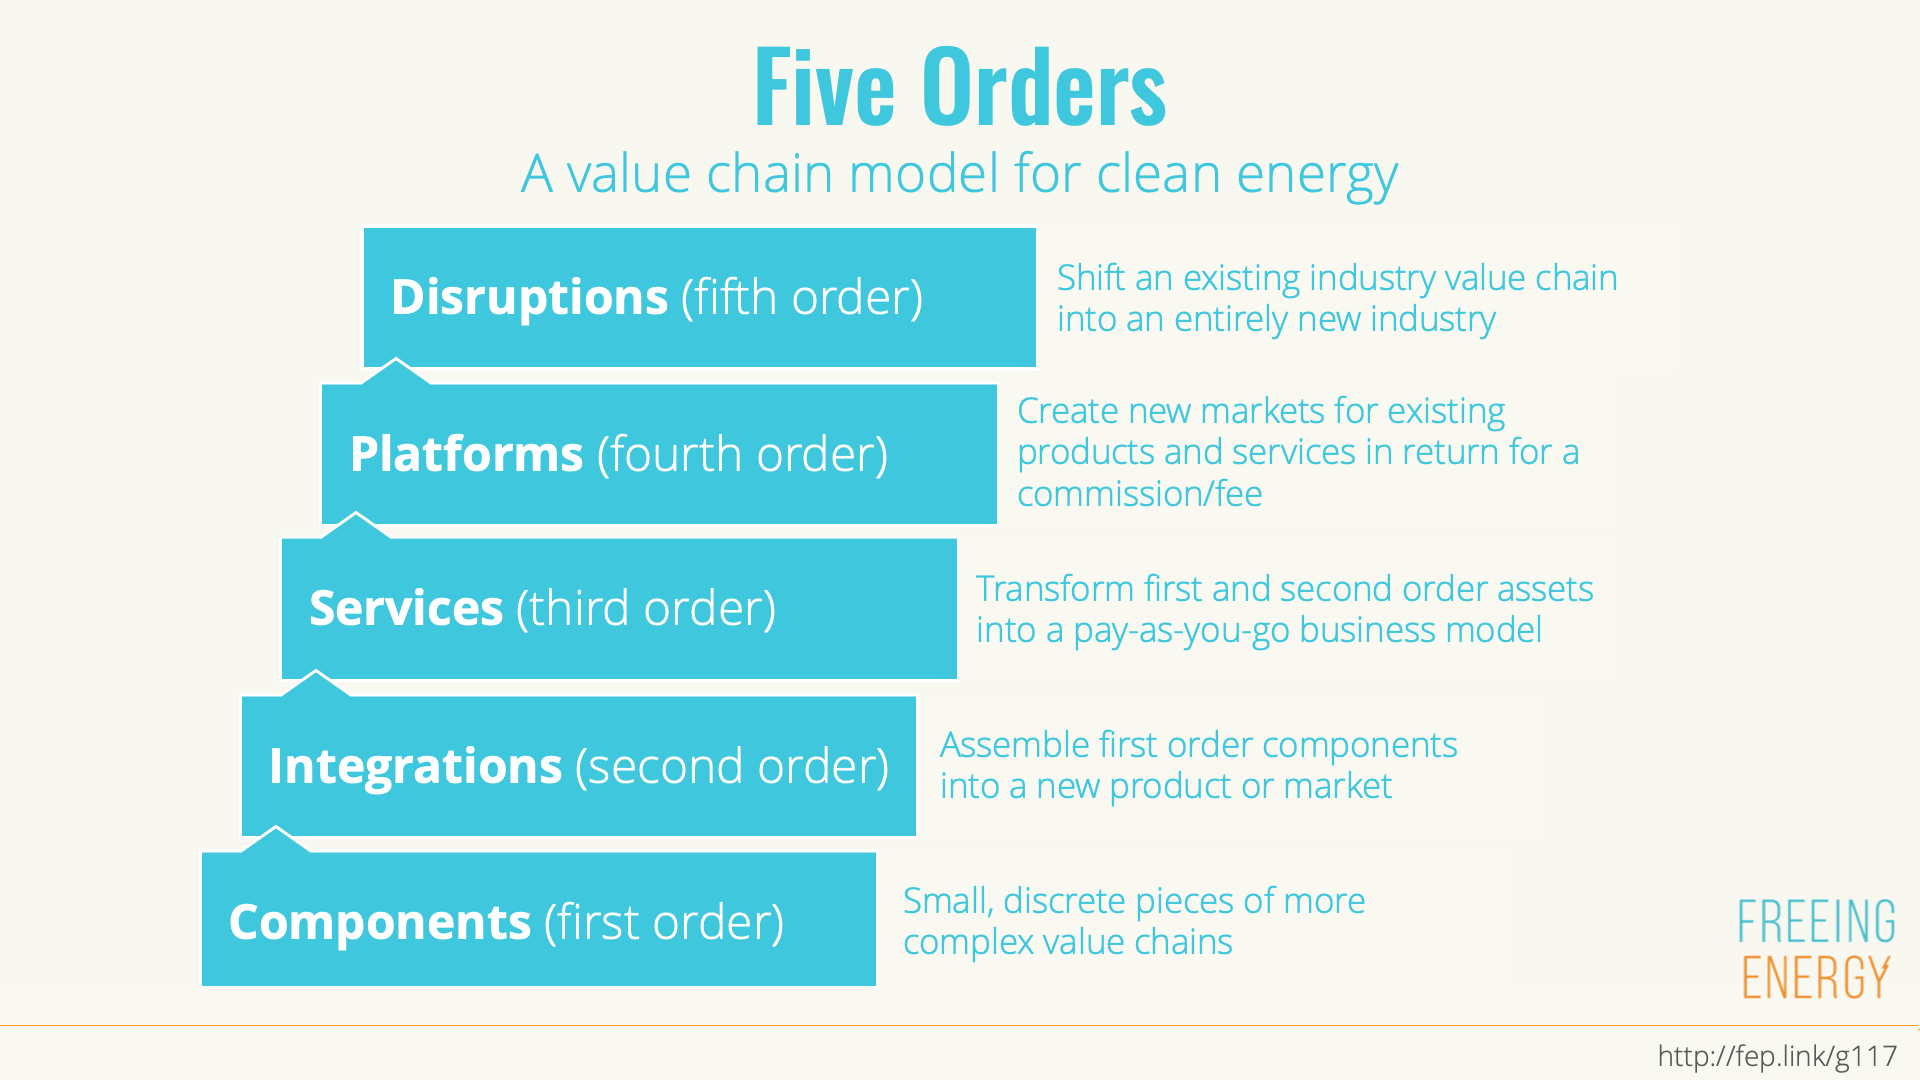 There are 5 orders to the value chain model for clean energy